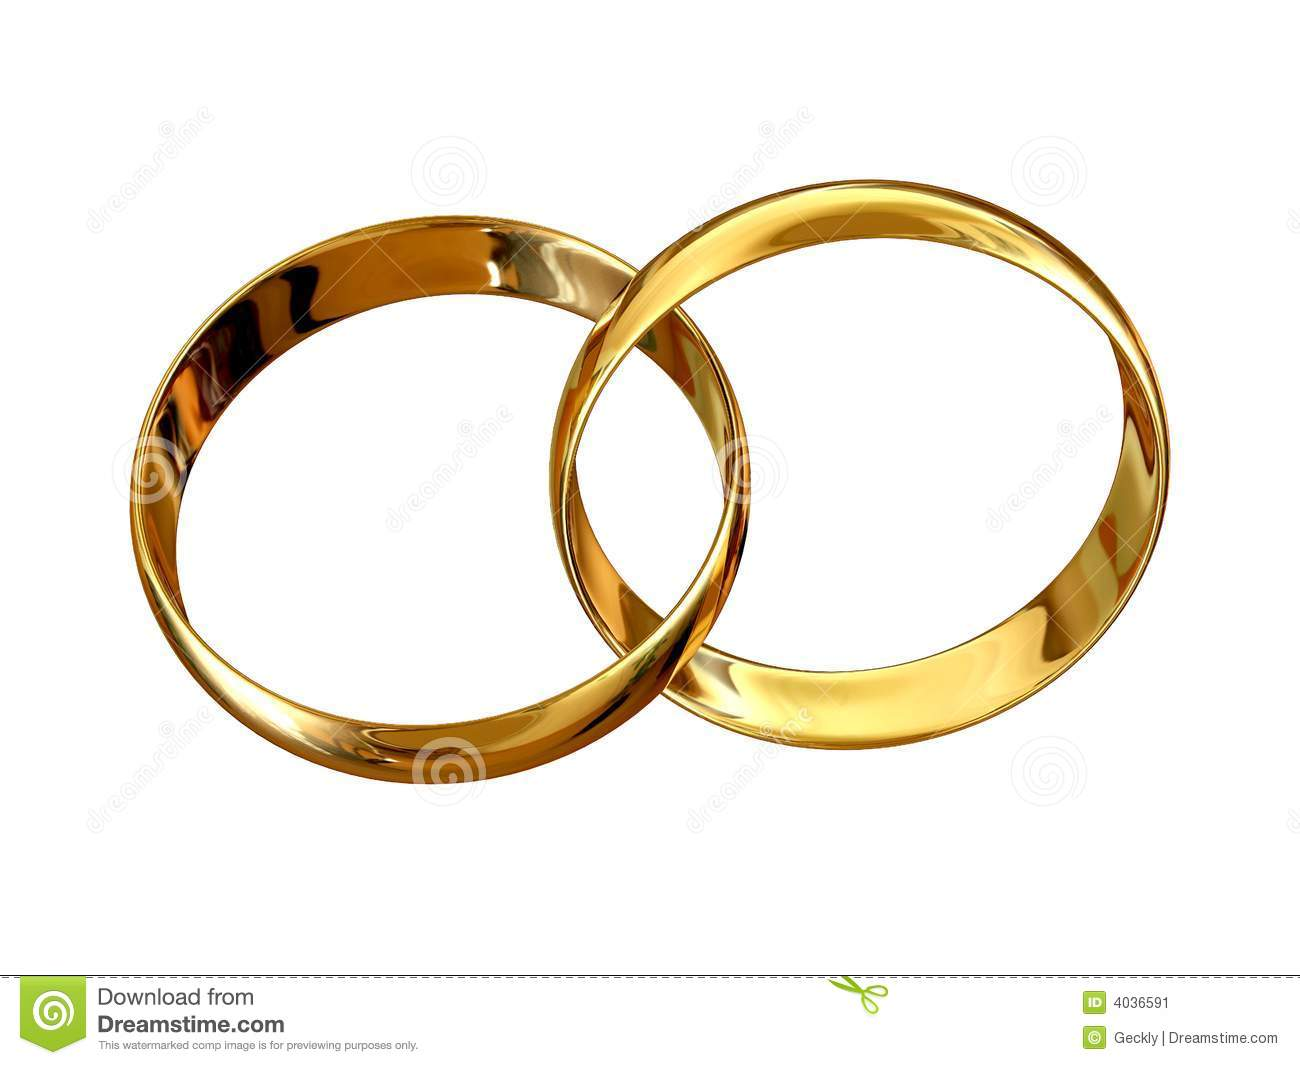 and status are of rings wedding symbol economic social new the indicator class